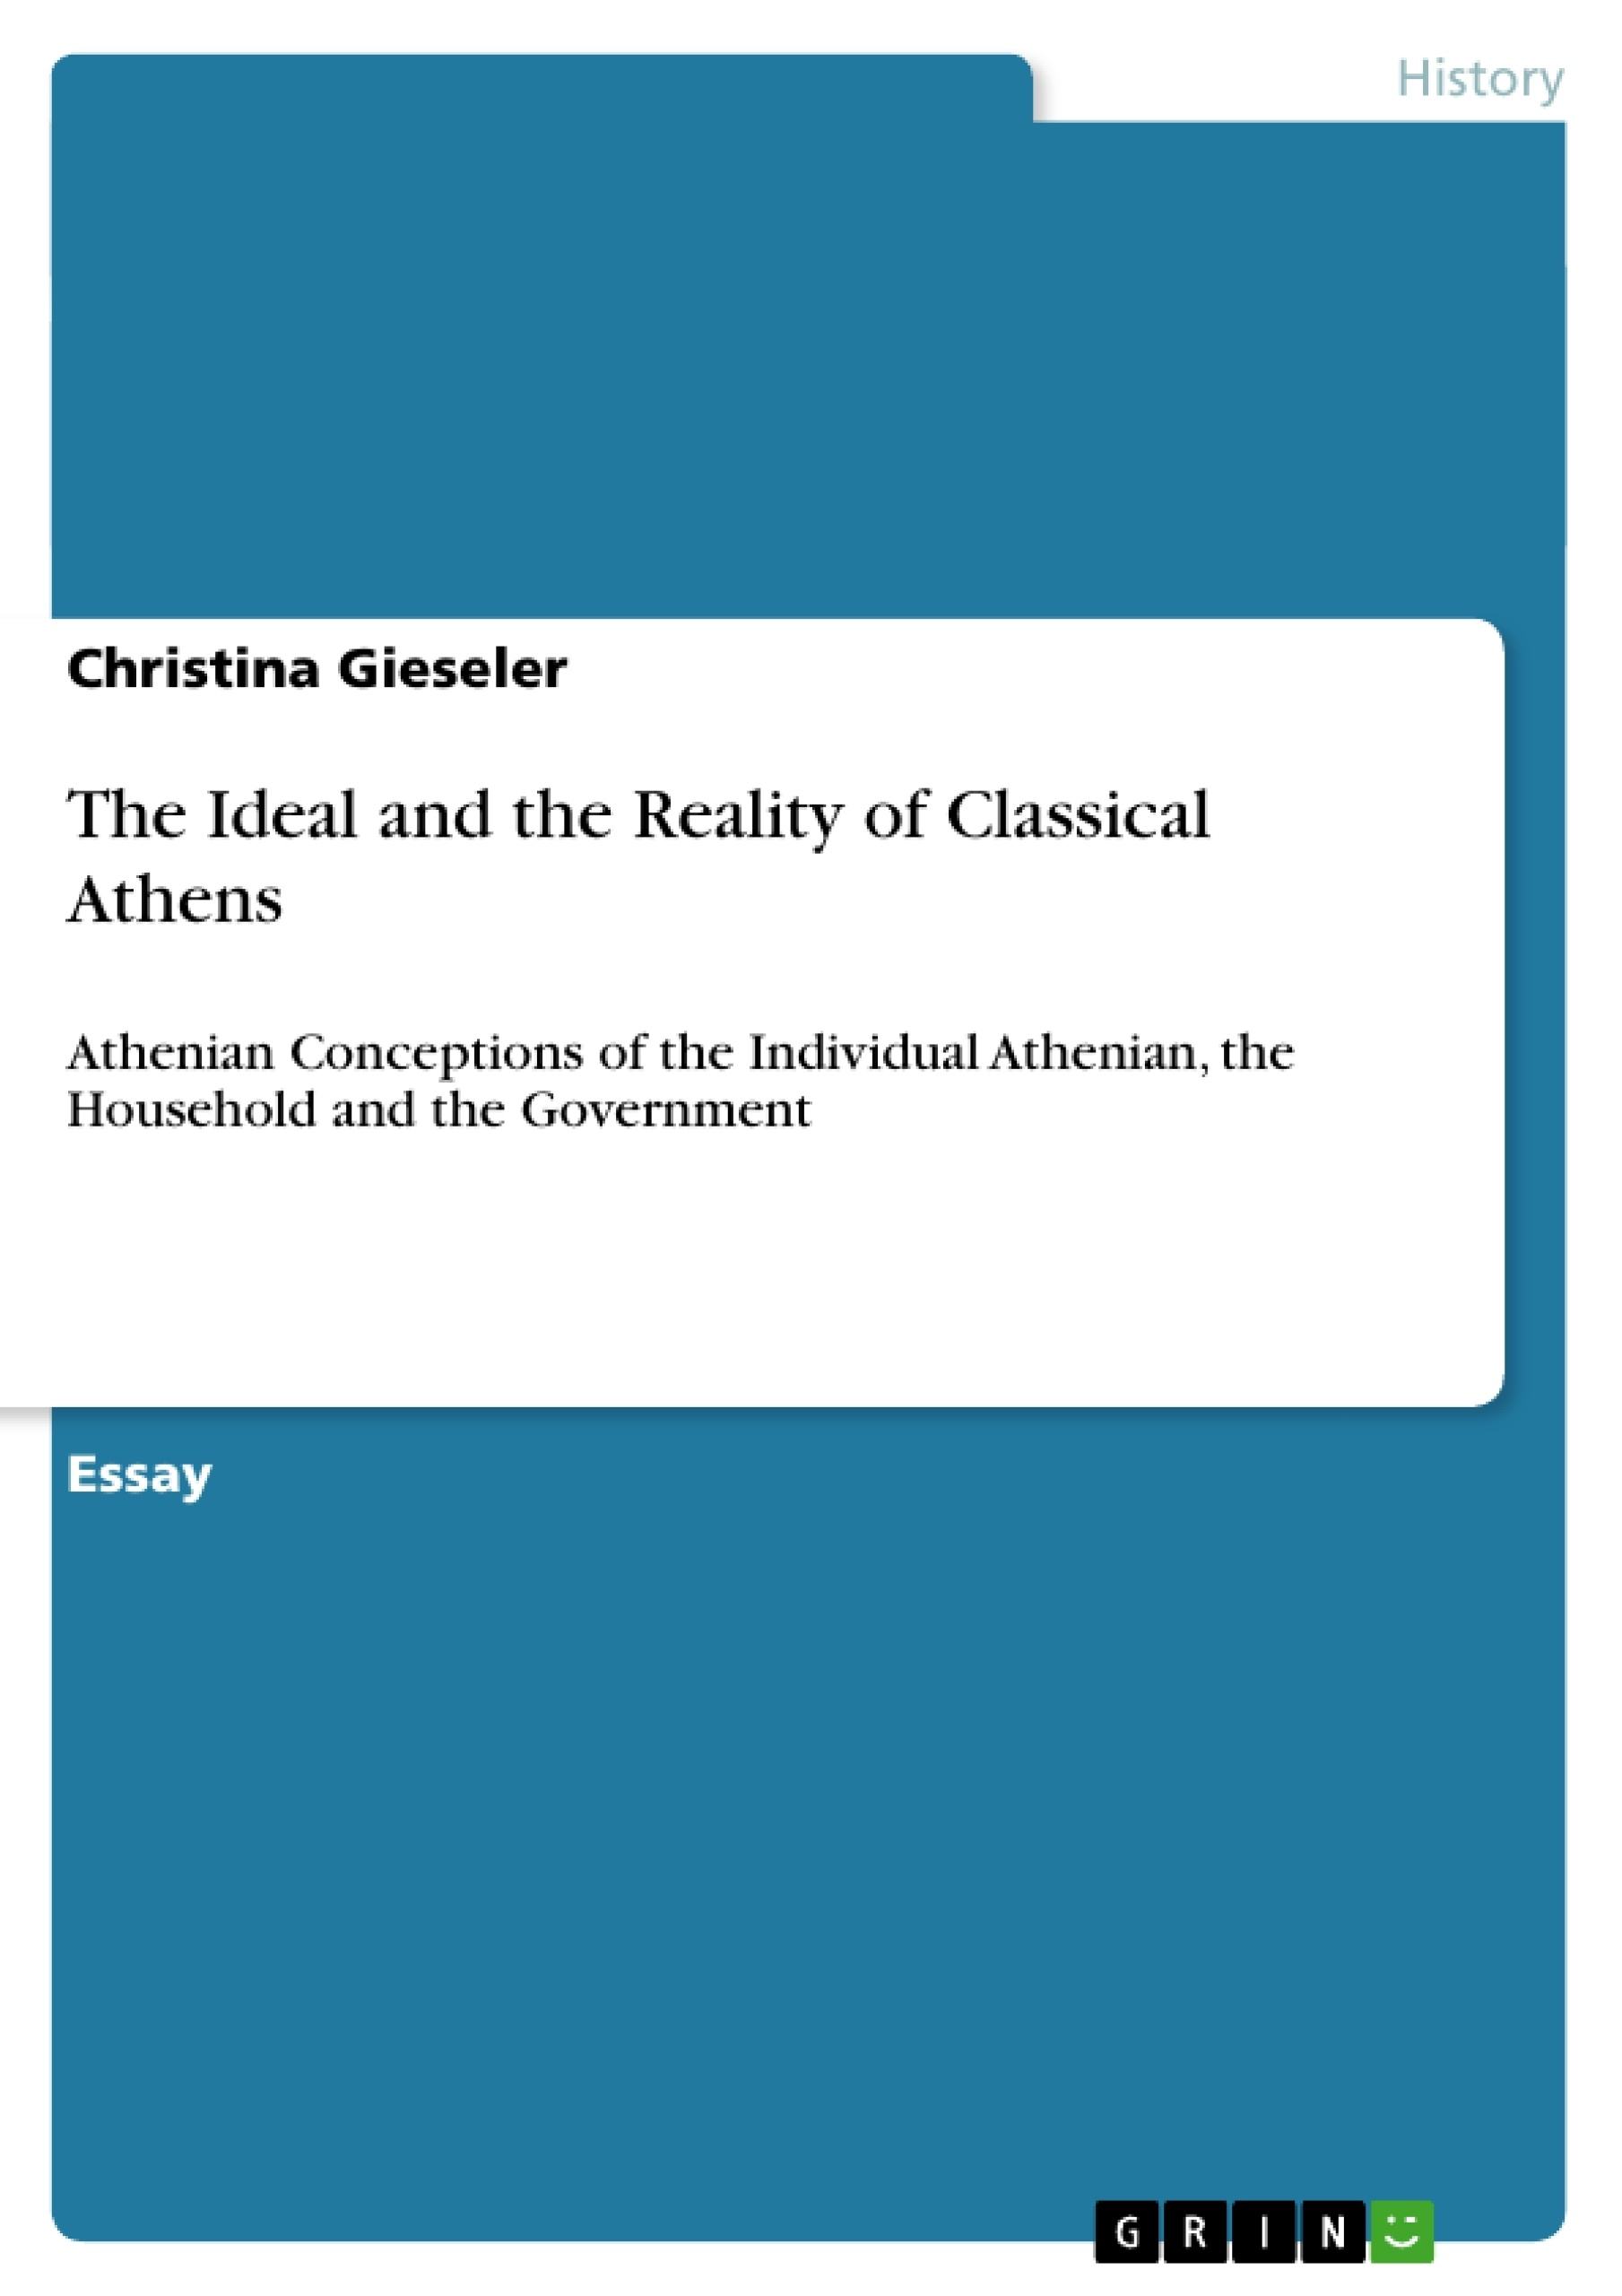 Title: The Ideal and the Reality of Classical Athens